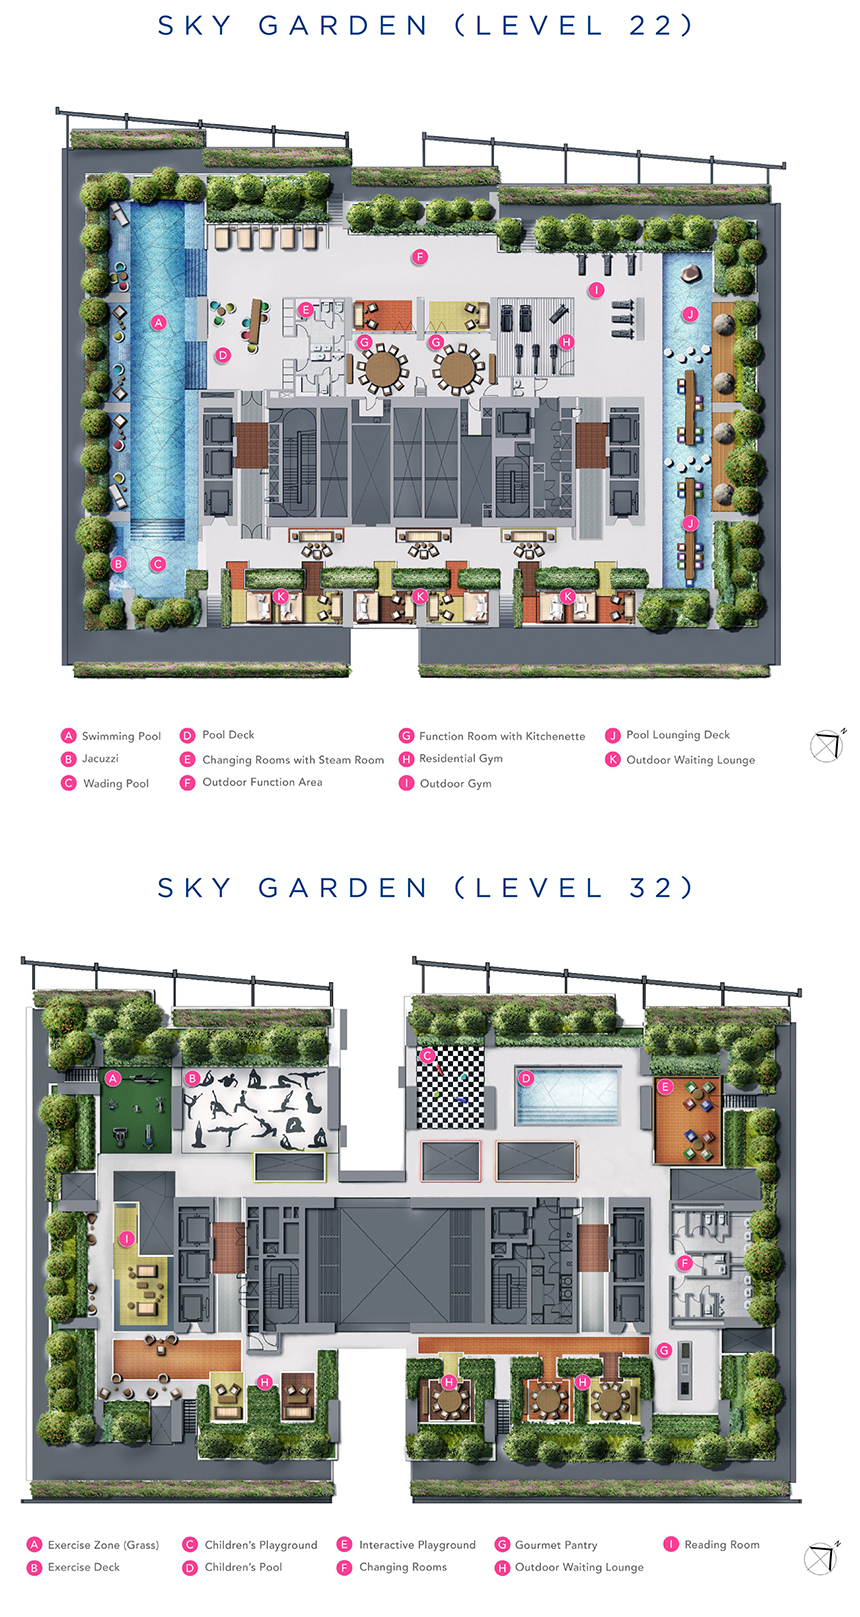 Site Plan of Sky Garden South Beach Residences